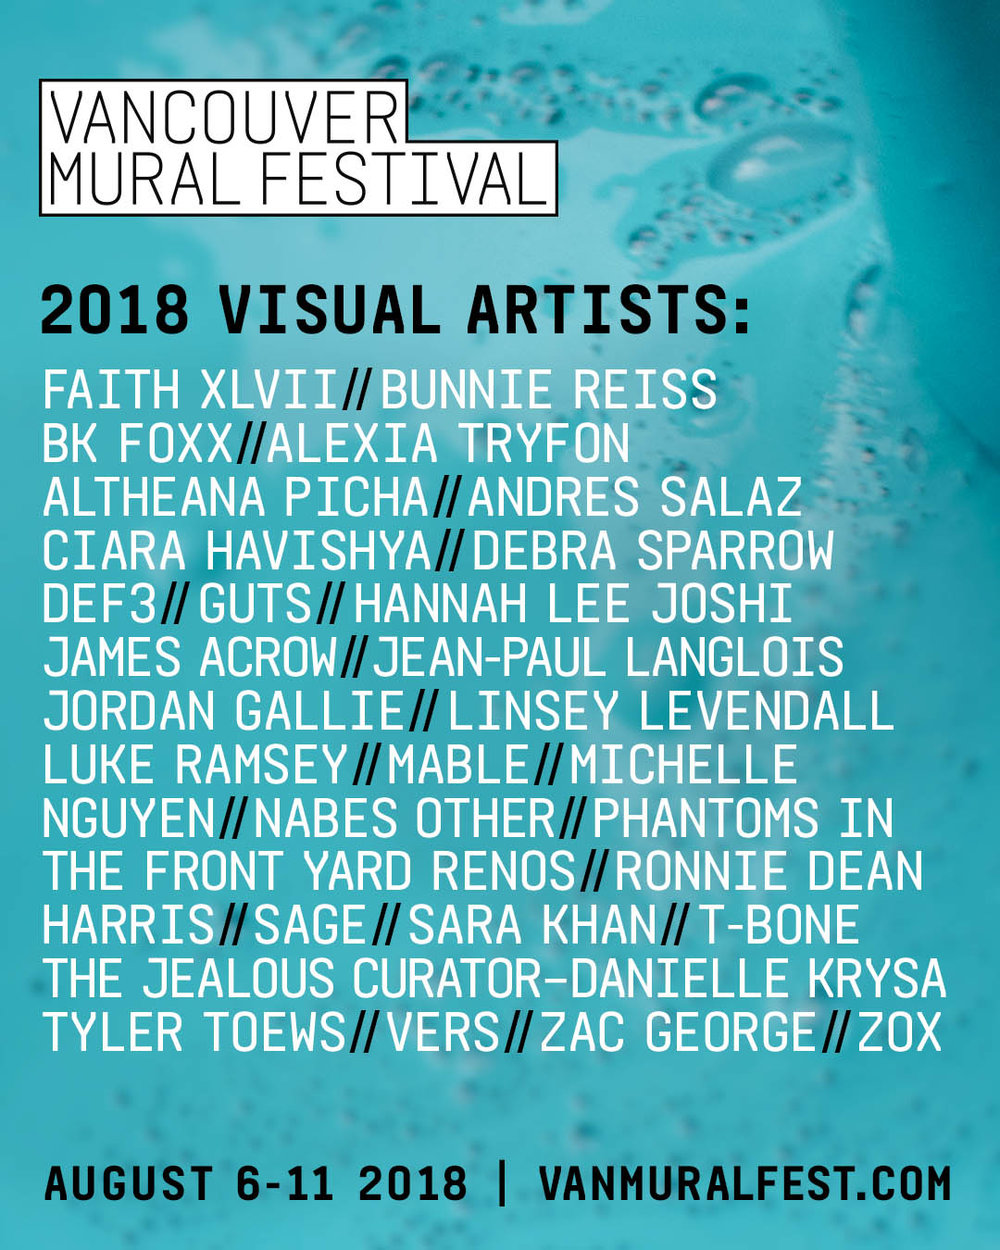 Vancouver Mural Festival Sneak Peak    August 6-11,  2018: MOUNT PLEASANT: FESTIVAL WEEK   June 13, 2018 (Vancouver, BC) – Create Vancouver Society with support from the City Of Vancouver, Mount Pleasant BIA, Canadian Heritage and the Province of British Columbia, proudly announce the return of the 3rd Annual Vancouver Mural Festival beginning on Monday August 6th and ending with a big street party Saturday August 11th, 2018. Today we release the names of 28 artists officially chosen by our curators to paint this summer, including selections from nearly 700 applications submitted earlier this year.  The focus is once again mostly on an eclectic range of local and regional artists from backgrounds in gallery-centric fine art, tattoo, street art, graffiti, traditional and contemporary Indigenous design, and more. Vancouver standouts like  Danielle Krysa (The Jealous Curator)  and Musqueam designer and weaver  Debra Sparrow  top the list in addition to an all-star all-female roster of international guest muralists:  FaithXLVII (South Africa) ,  Bunnie Reiss (L.A.) , and  BK Foxx (New York) . Organizers are also excited to highlight a number of murals in partnership with local organizations such as  Downtown Eastside Centre For The Arts ,  THRIVE Art Studio ,  Burrard Arts Foundation , and  The Mount Pleasant Neighbourhood House .   VANCOUVER MURAL FESTIVAL 2018 ARTIST LIST:   Faith XLVII // Bunnie Reiss // BK Foxx // Alexia Tryfon // Altheana Picha // Andres Salaz // Ciara Havishya // Debra Sparrow // Def3 // Guts // Hannah Lee // James Acrow //Jean-Paul Langlois // Jordan Gallie // Linsey Levendall // Luke Ramsey // Mable // Michelle Nyugen // Nabes // Other Phantoms In The Front Yard // Renos // Ronnie Dean Harris // Sage // Sara Khan // T-Bone // Danielle Krysa (The Jealous Curator) // Tyler Toews // Vers // Zac George // Zox   COMMUNITY MURAL PARTNERS:   Burrard Arts Foundation | Downtown Eastside Centre for the Arts | Mount Pleasant Neighbourhood House | THRIVE Art Studio | More to be announced soon  A week of painting, dialogues, parties and art openings culminates in the not-to-be-missed Mount Pleasant Street Party on Saturday, August 11th with an expected attendance of more than 125,000 people. Festival goers of all ages are invited to enjoy transformed alleyways, interactive art activities, music, markets, street dance contests, graffiti jams, a craft beer garden, and 30+ brand new works of public art.   For more information on VMF and this year's artist selection process you can attend an Information Session/Q&A with event organizers and curators on Monday, June 18th at 6pm at Heritage Hall (3102 Main St).   For more information regarding VMF in the coming weeks you can visit    www.VanMuralFest.ca  or follow on  Instagram  |  Facebook  |  Twitter